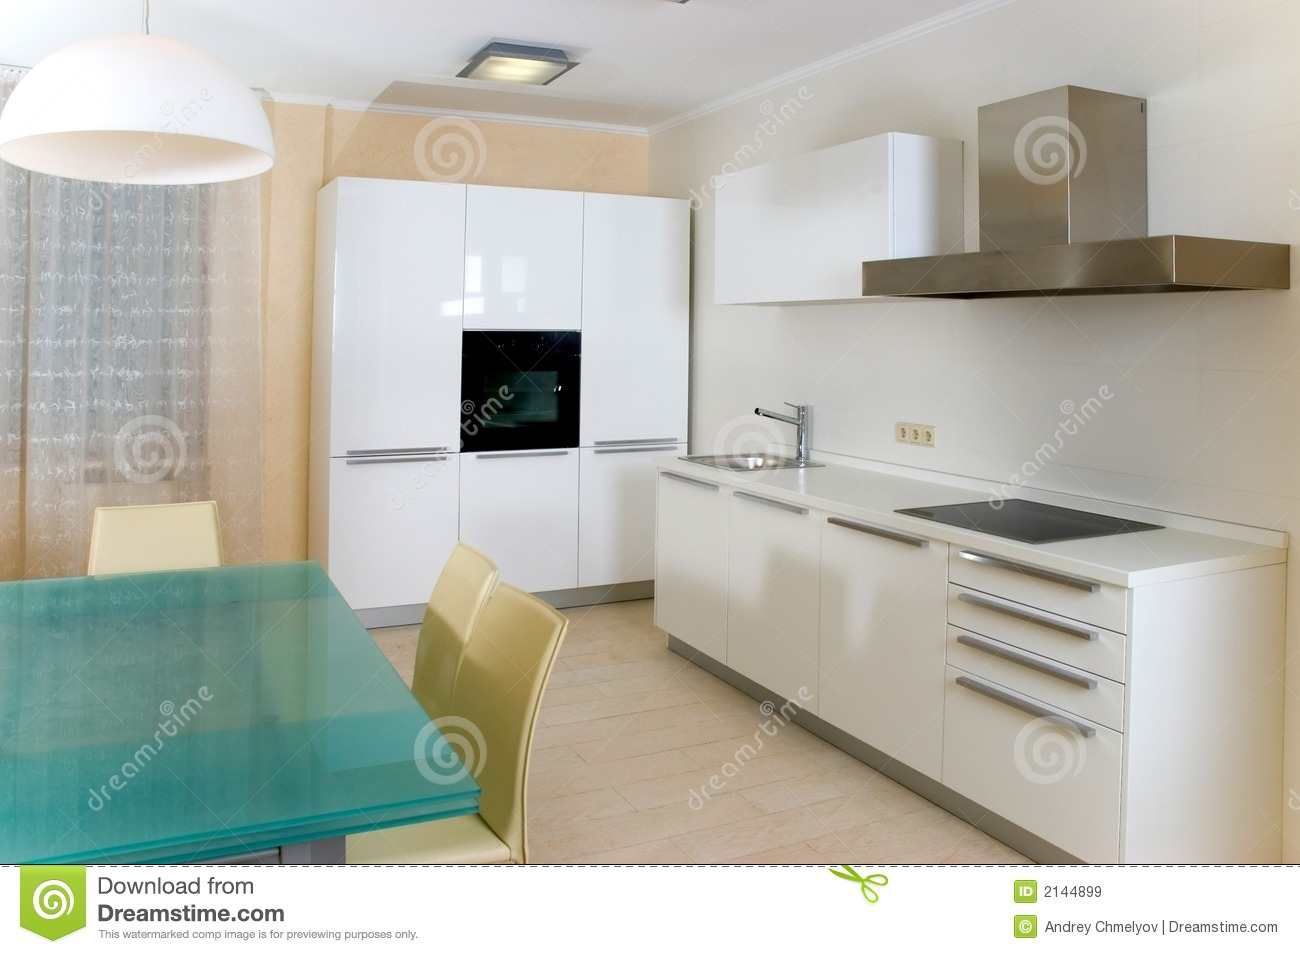 Modern kitchen with furniture stock image image of for Les element de cuisine moderne